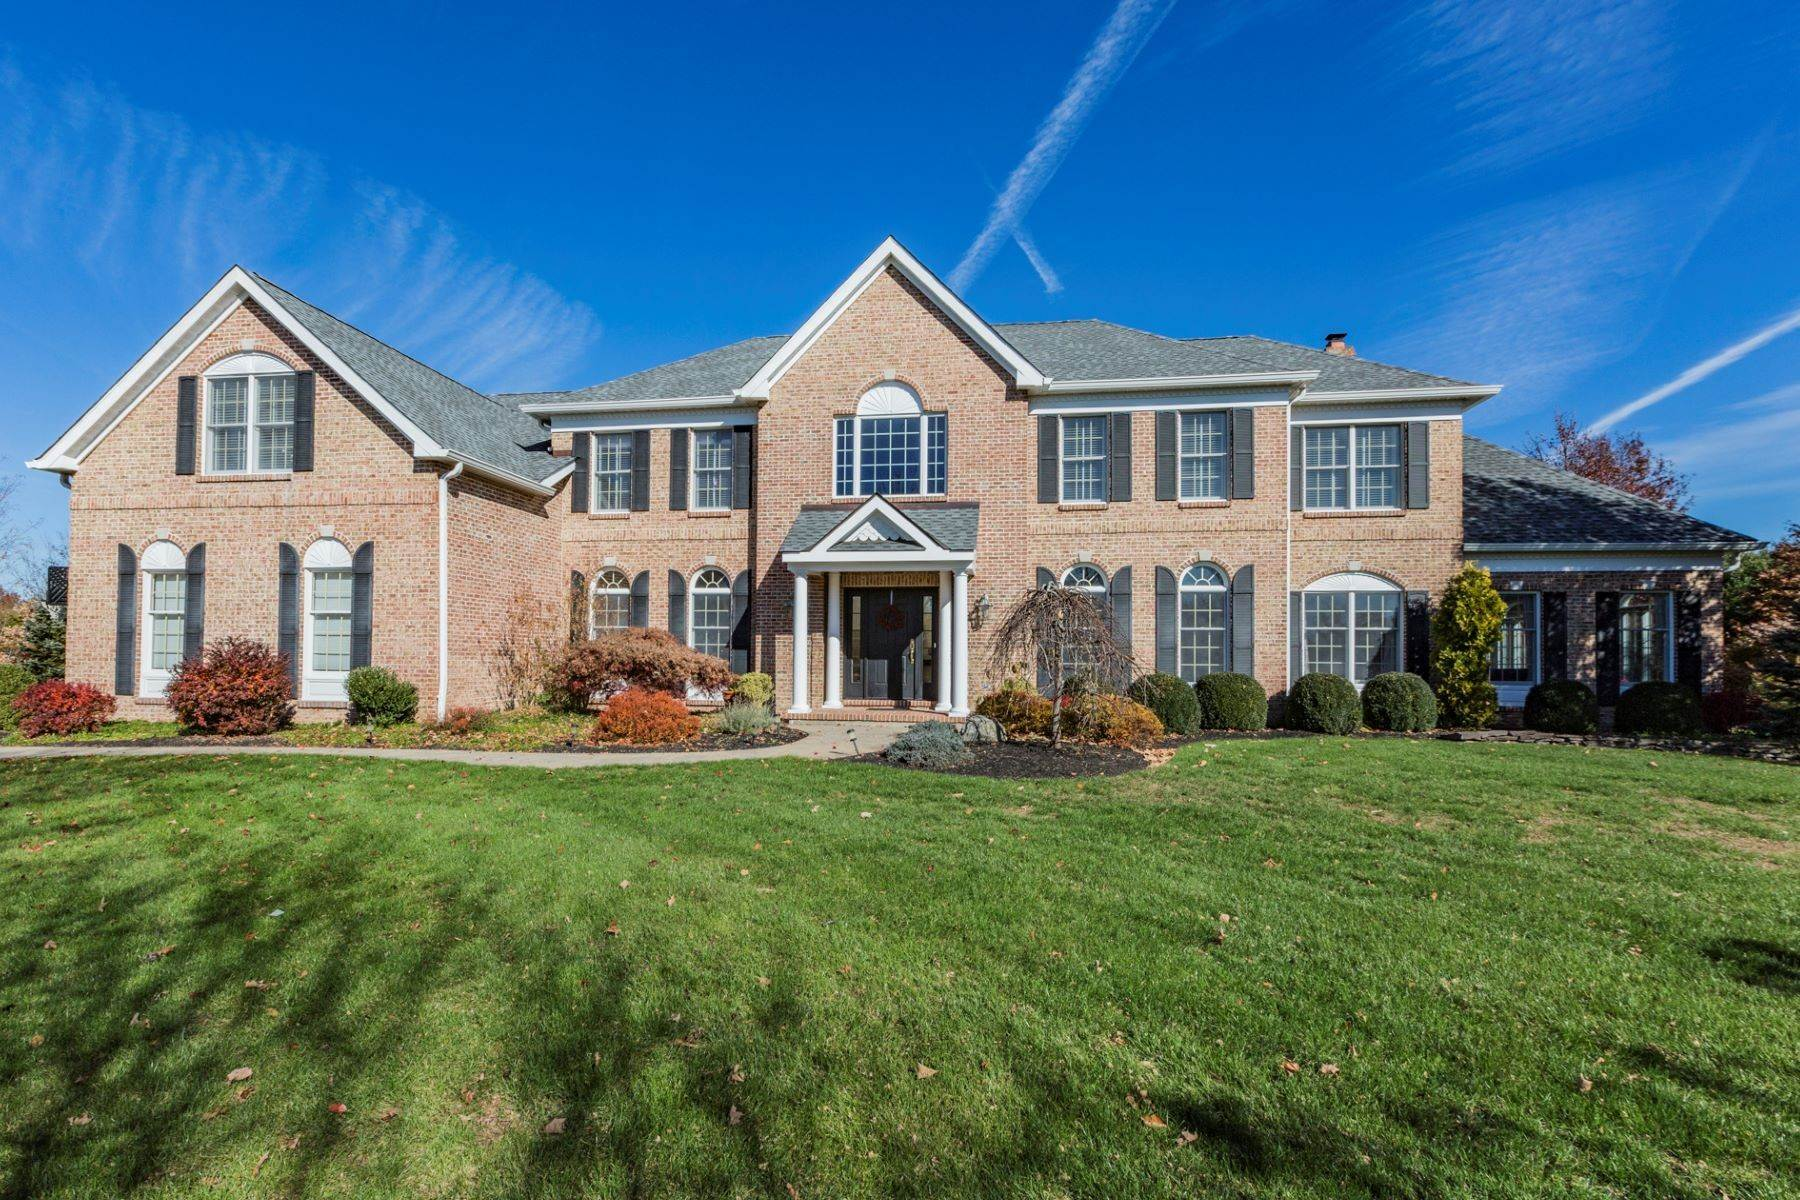 Single Family Homes for Sale at Sun-filled Colonial in Bedens Brook Estates 45 Gaitway Drive Skillman, New Jersey 08558 United States